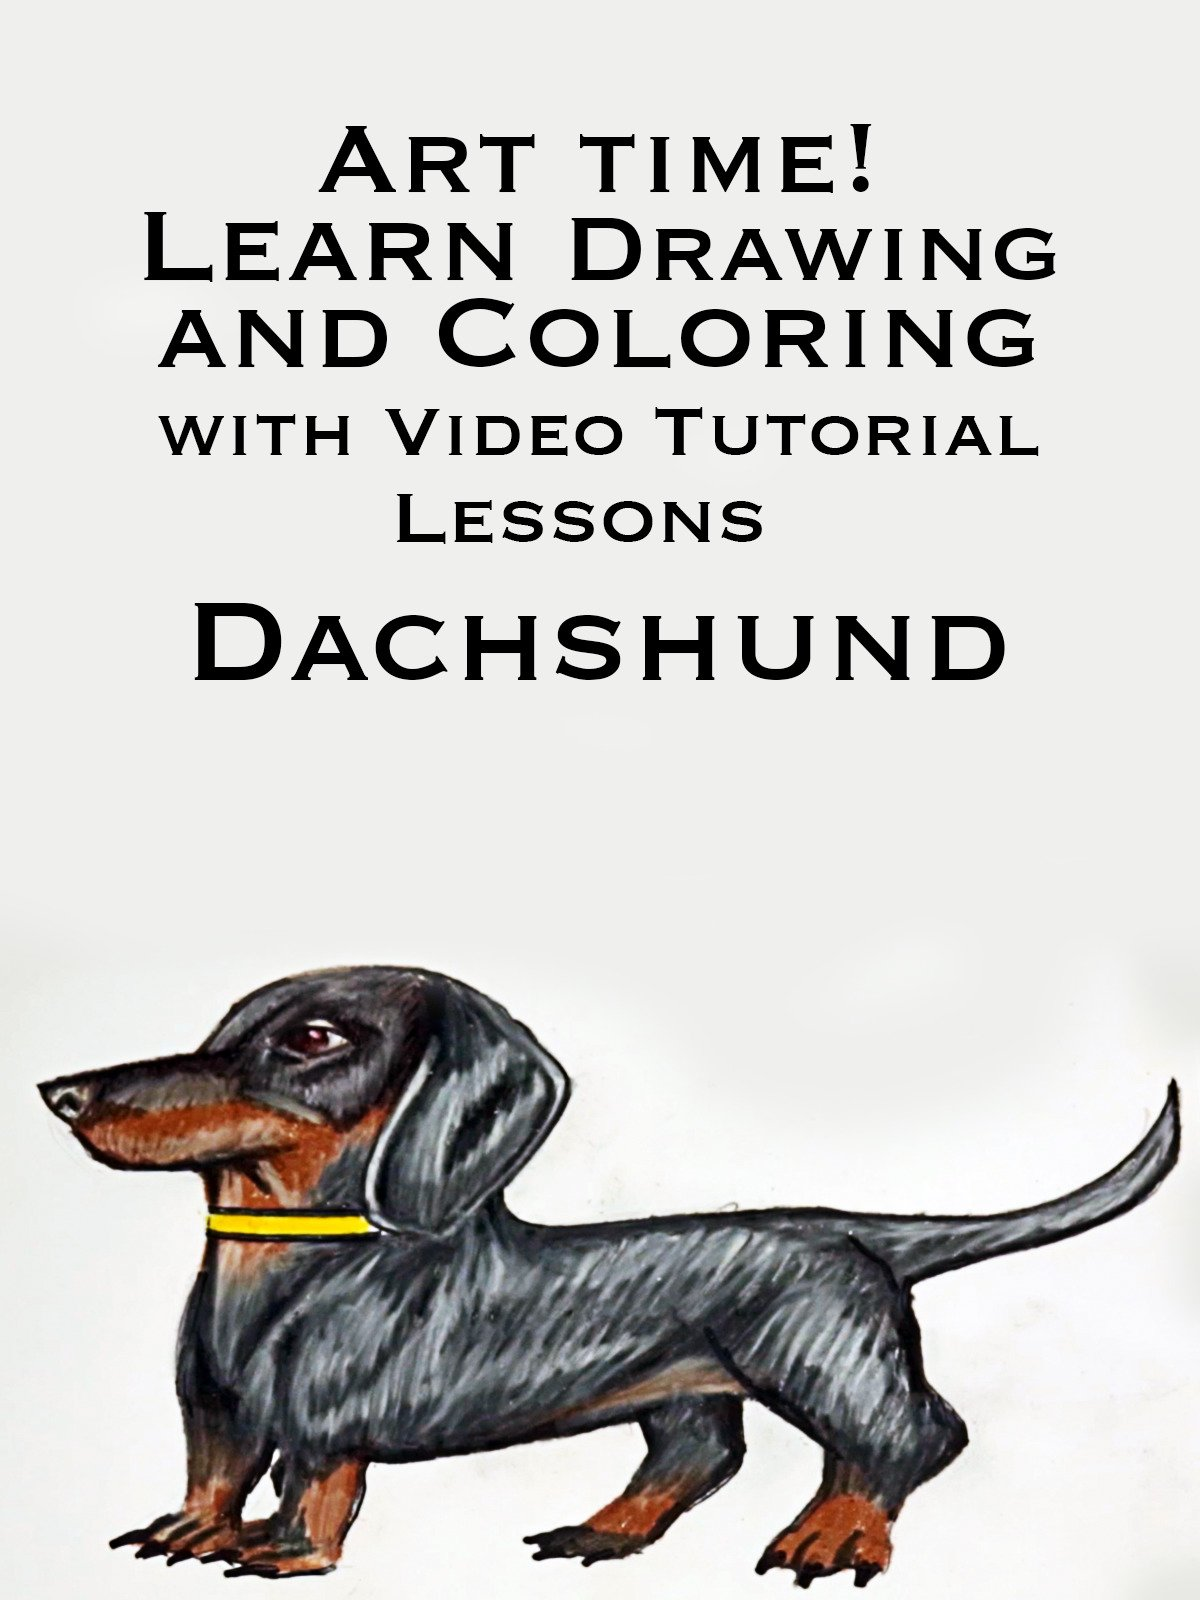 Art Time! Learn Drawing and Coloring with Video Tutorial Lessons Dachshund